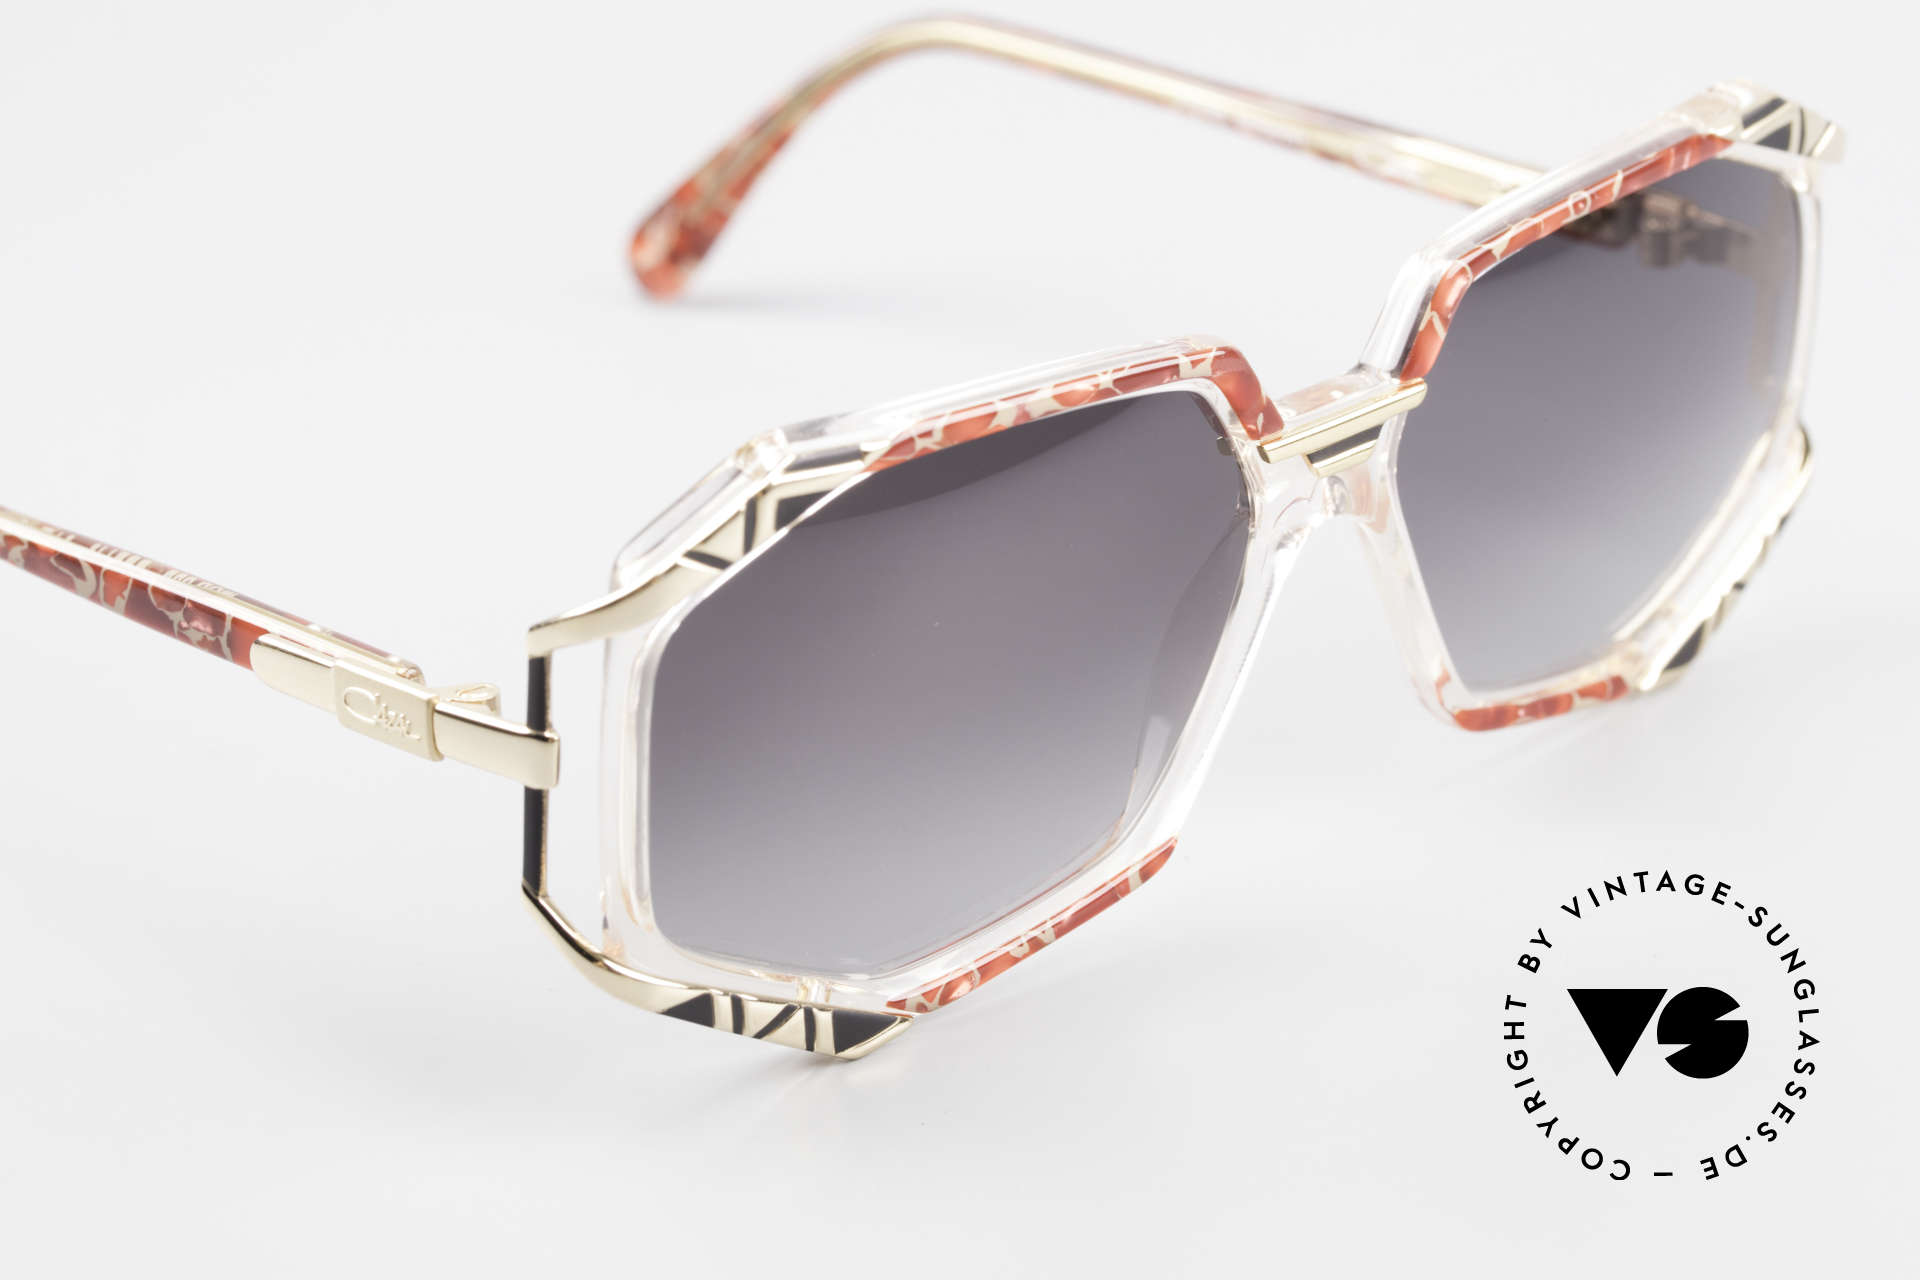 Cazal 355 Spectacular Cazal Sunglasses, NO retro shades, but an authentic 25 years old original, Made for Women